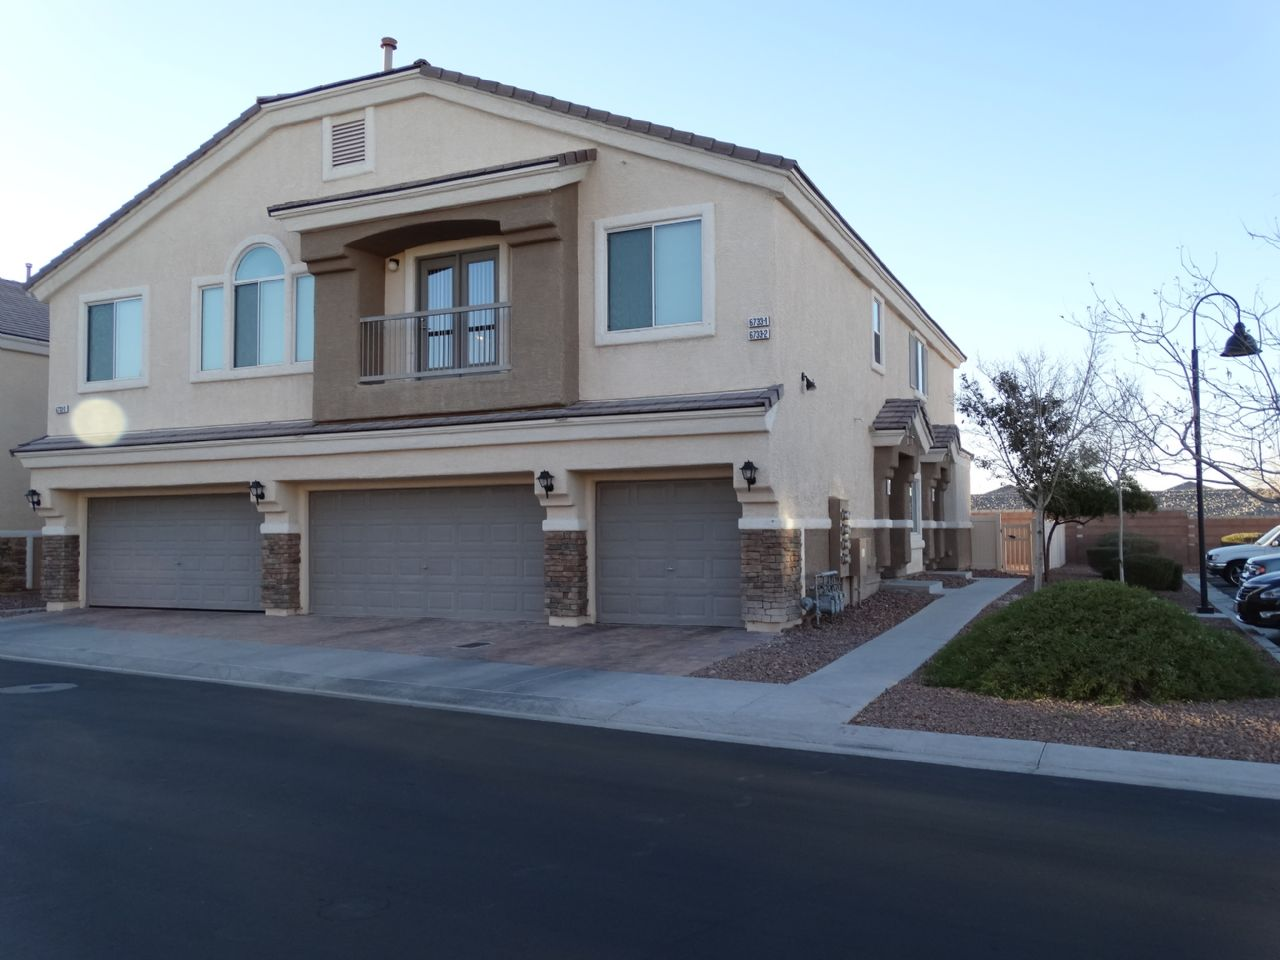 Gated Aliante Townhome with Community Pool - 6733 LOOKOUT LODGE LN, North Las Vegas NV